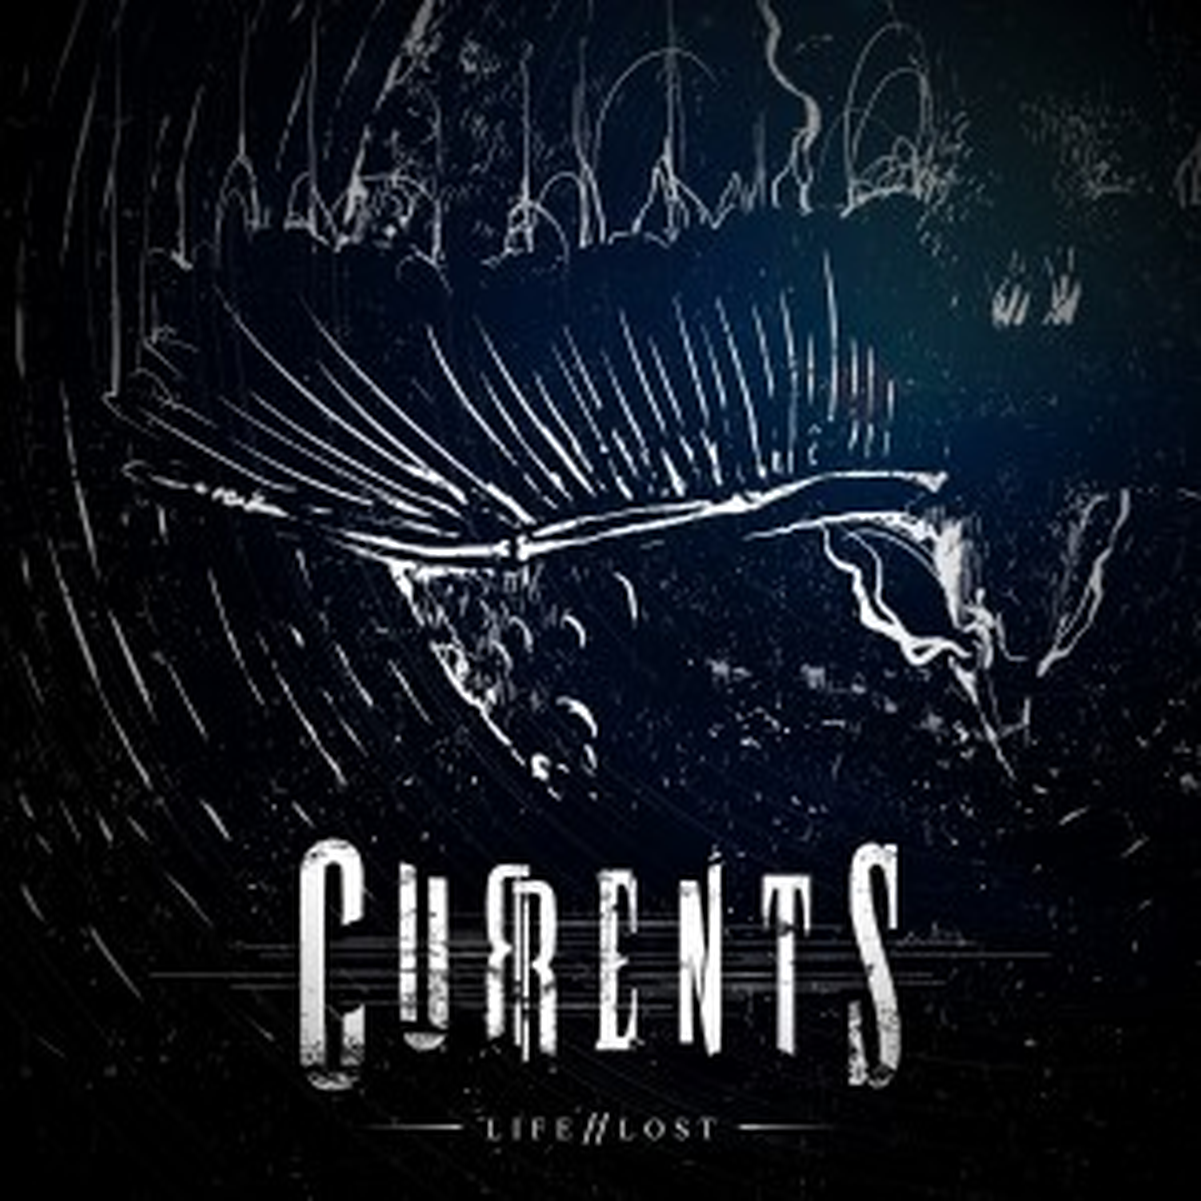 Currentsct wiki, Currentsct review, Currentsct history, Currentsct news